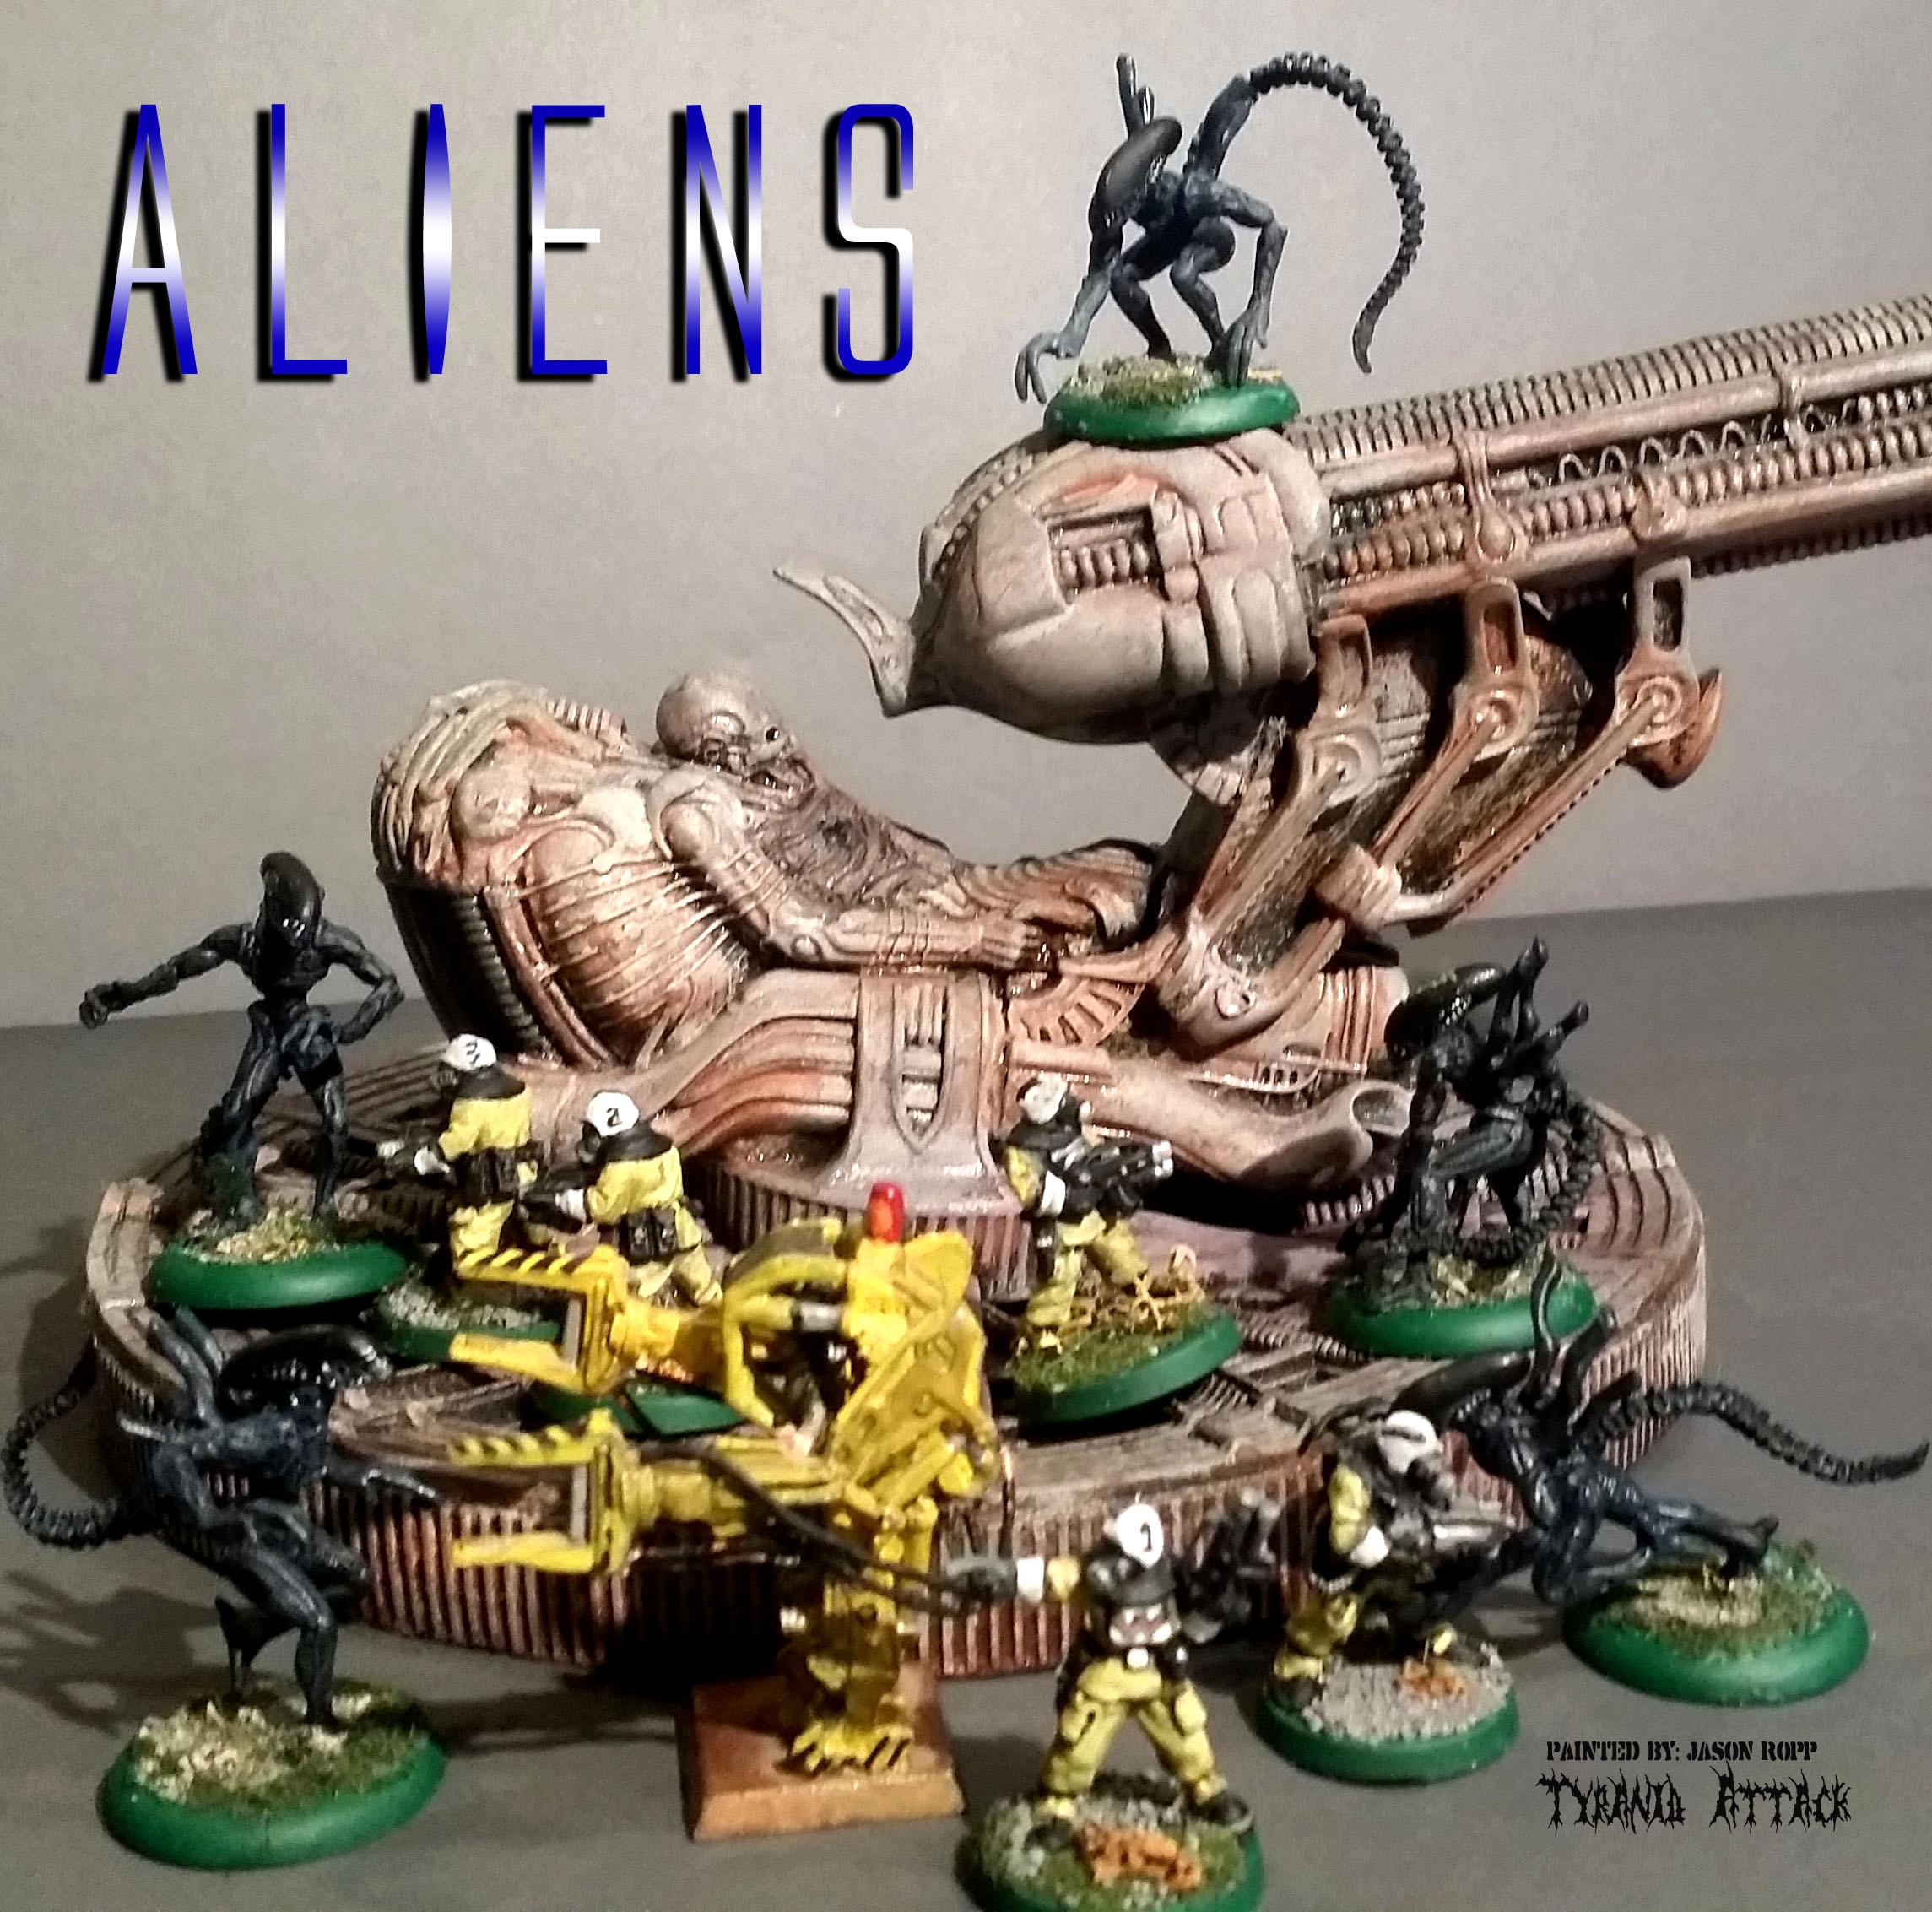 Alien, Aliens, Avp, Colonial Marines, Egg, Engeneer, Facehugger, Hasslefree, Horrorclix, Miniaturem Miniatures, Newt, Pred, Predator, Prodos, Prometheus, Ripley